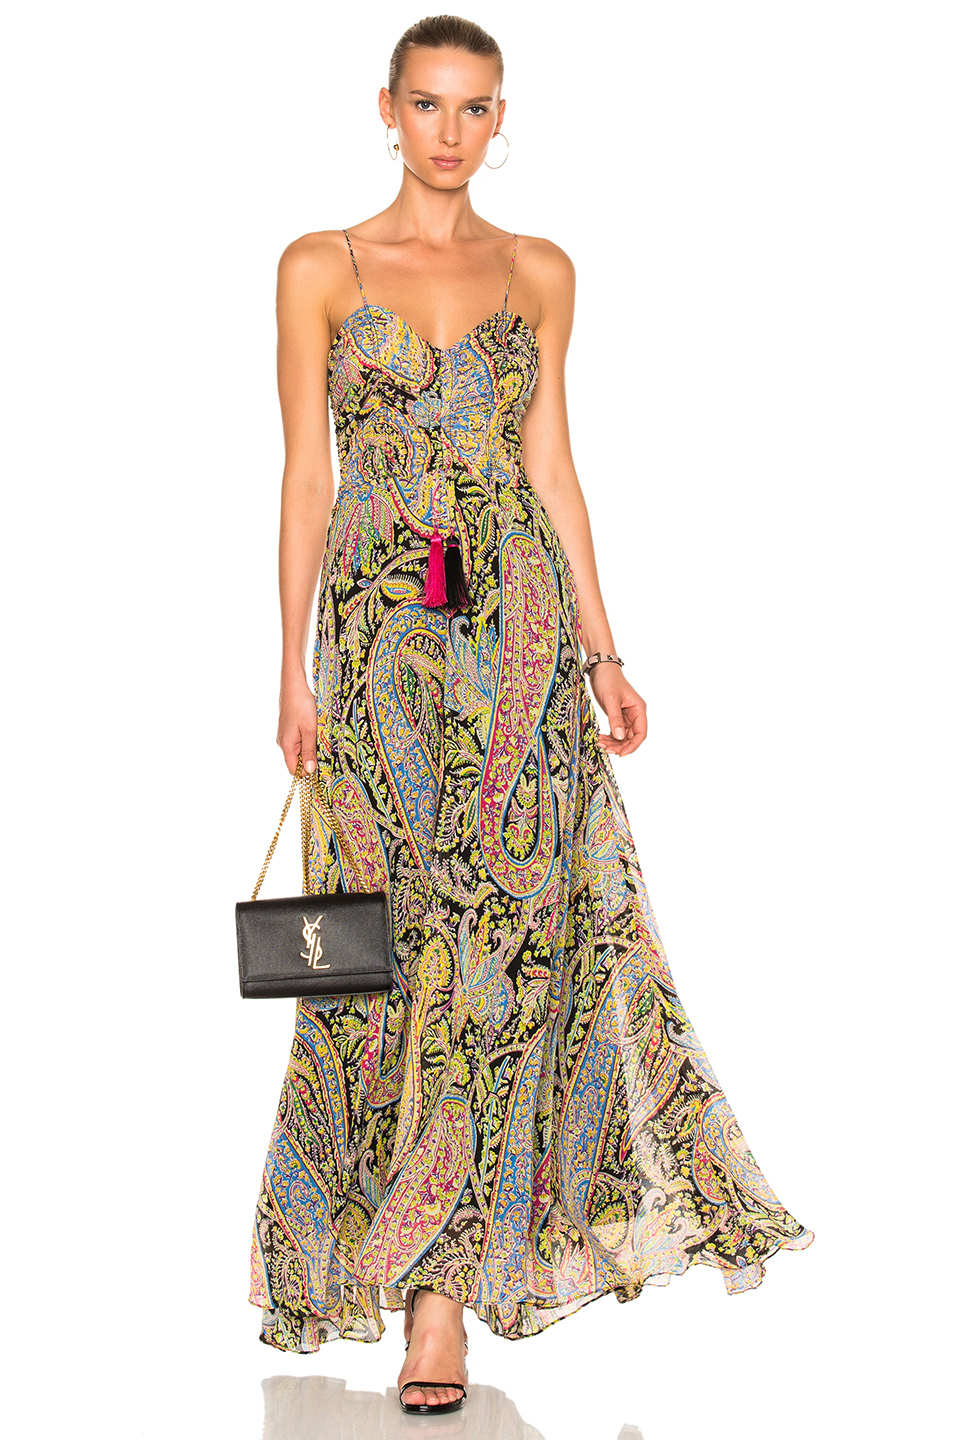 Etro Doranger Dress in Abstract,Pink,Yellow